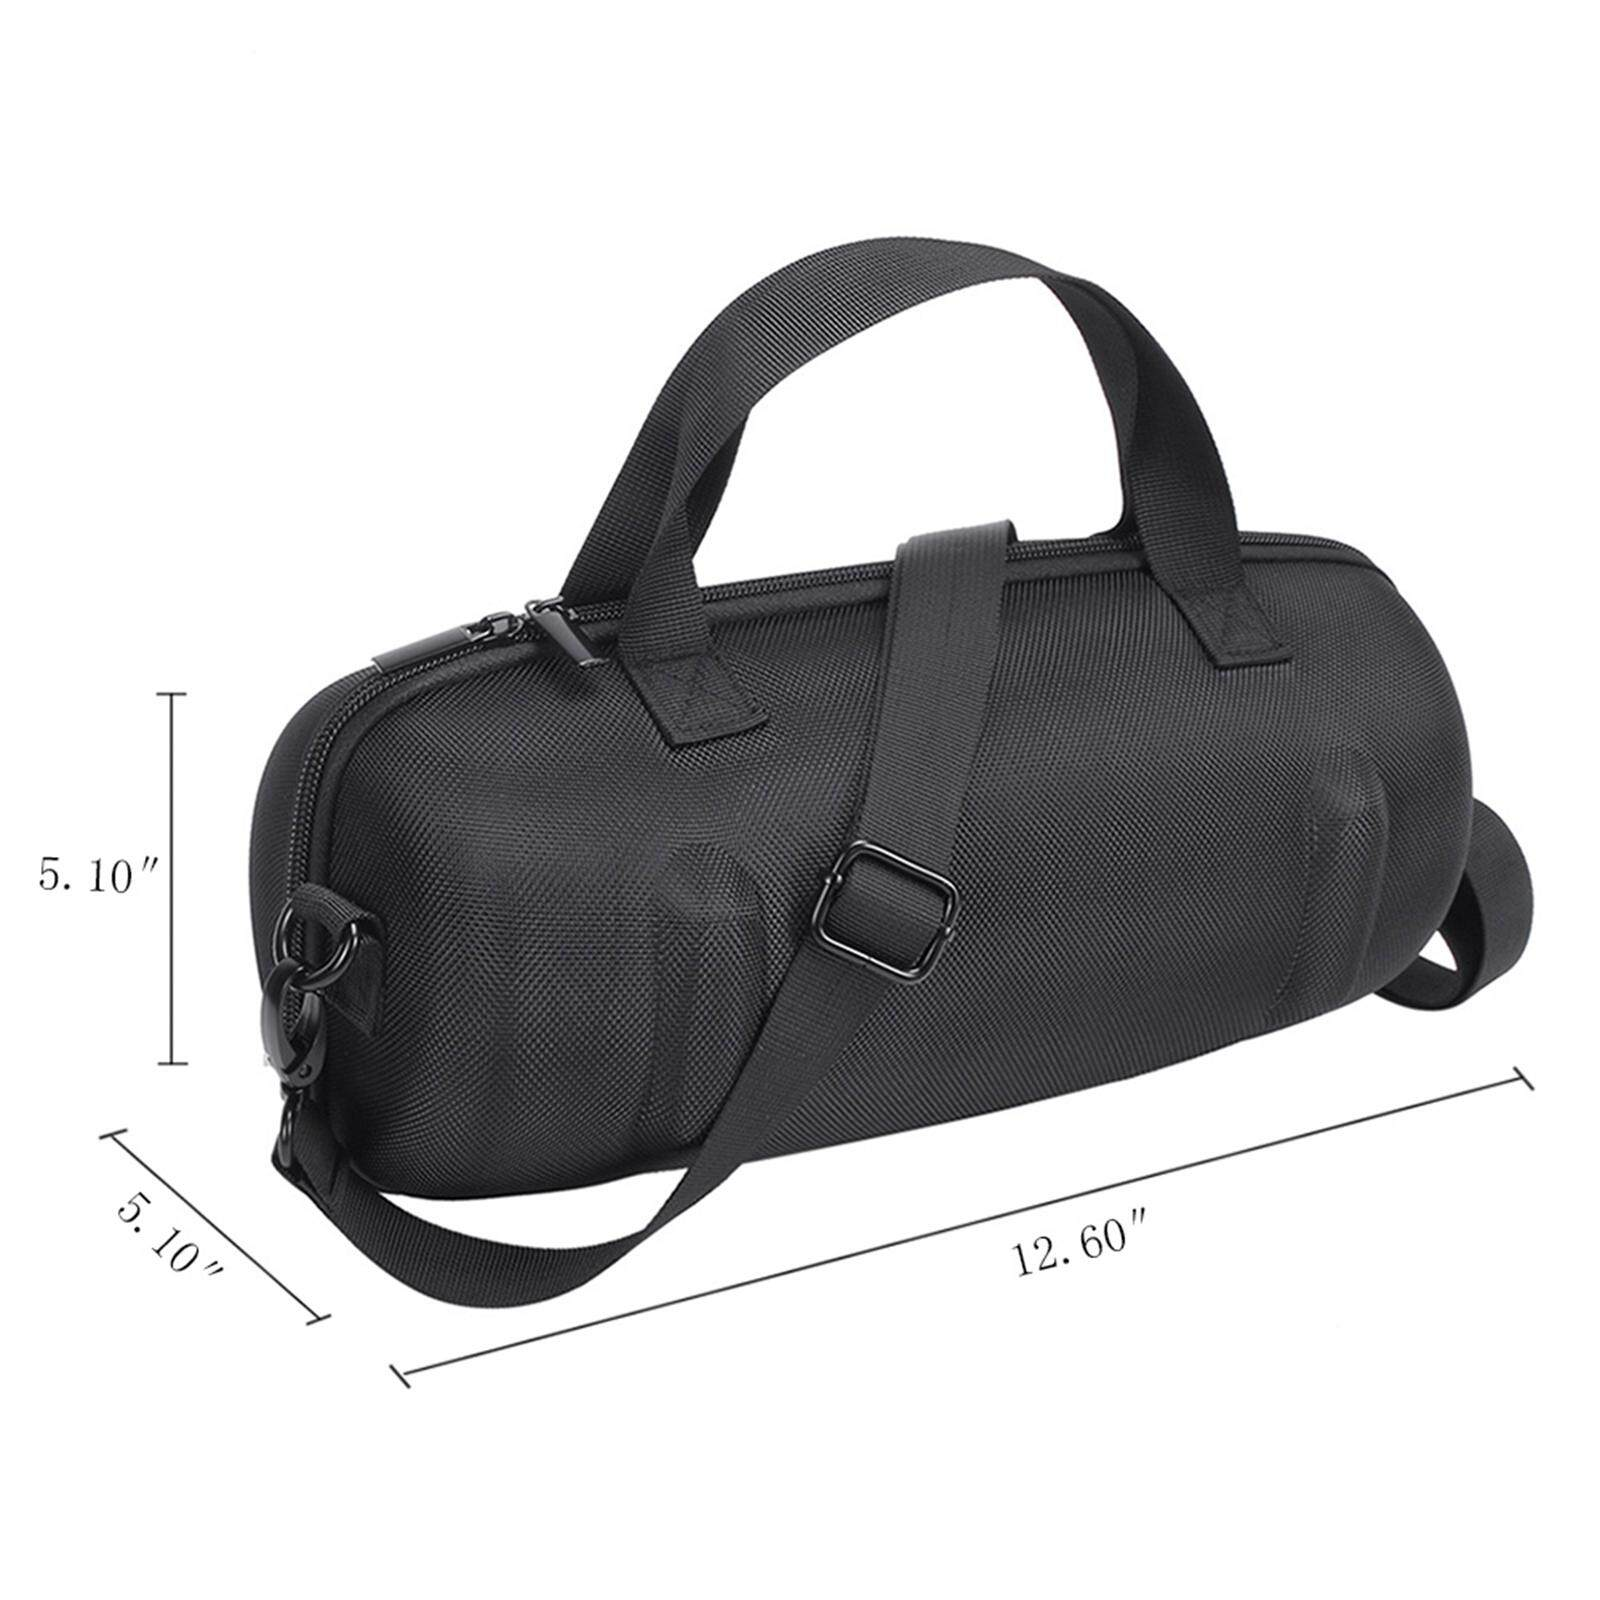 Features Newest Portable Storage Bag Carrying Case Protect Pouch Jbl Xtreme Speaker Black Travelling For 2 Wireless